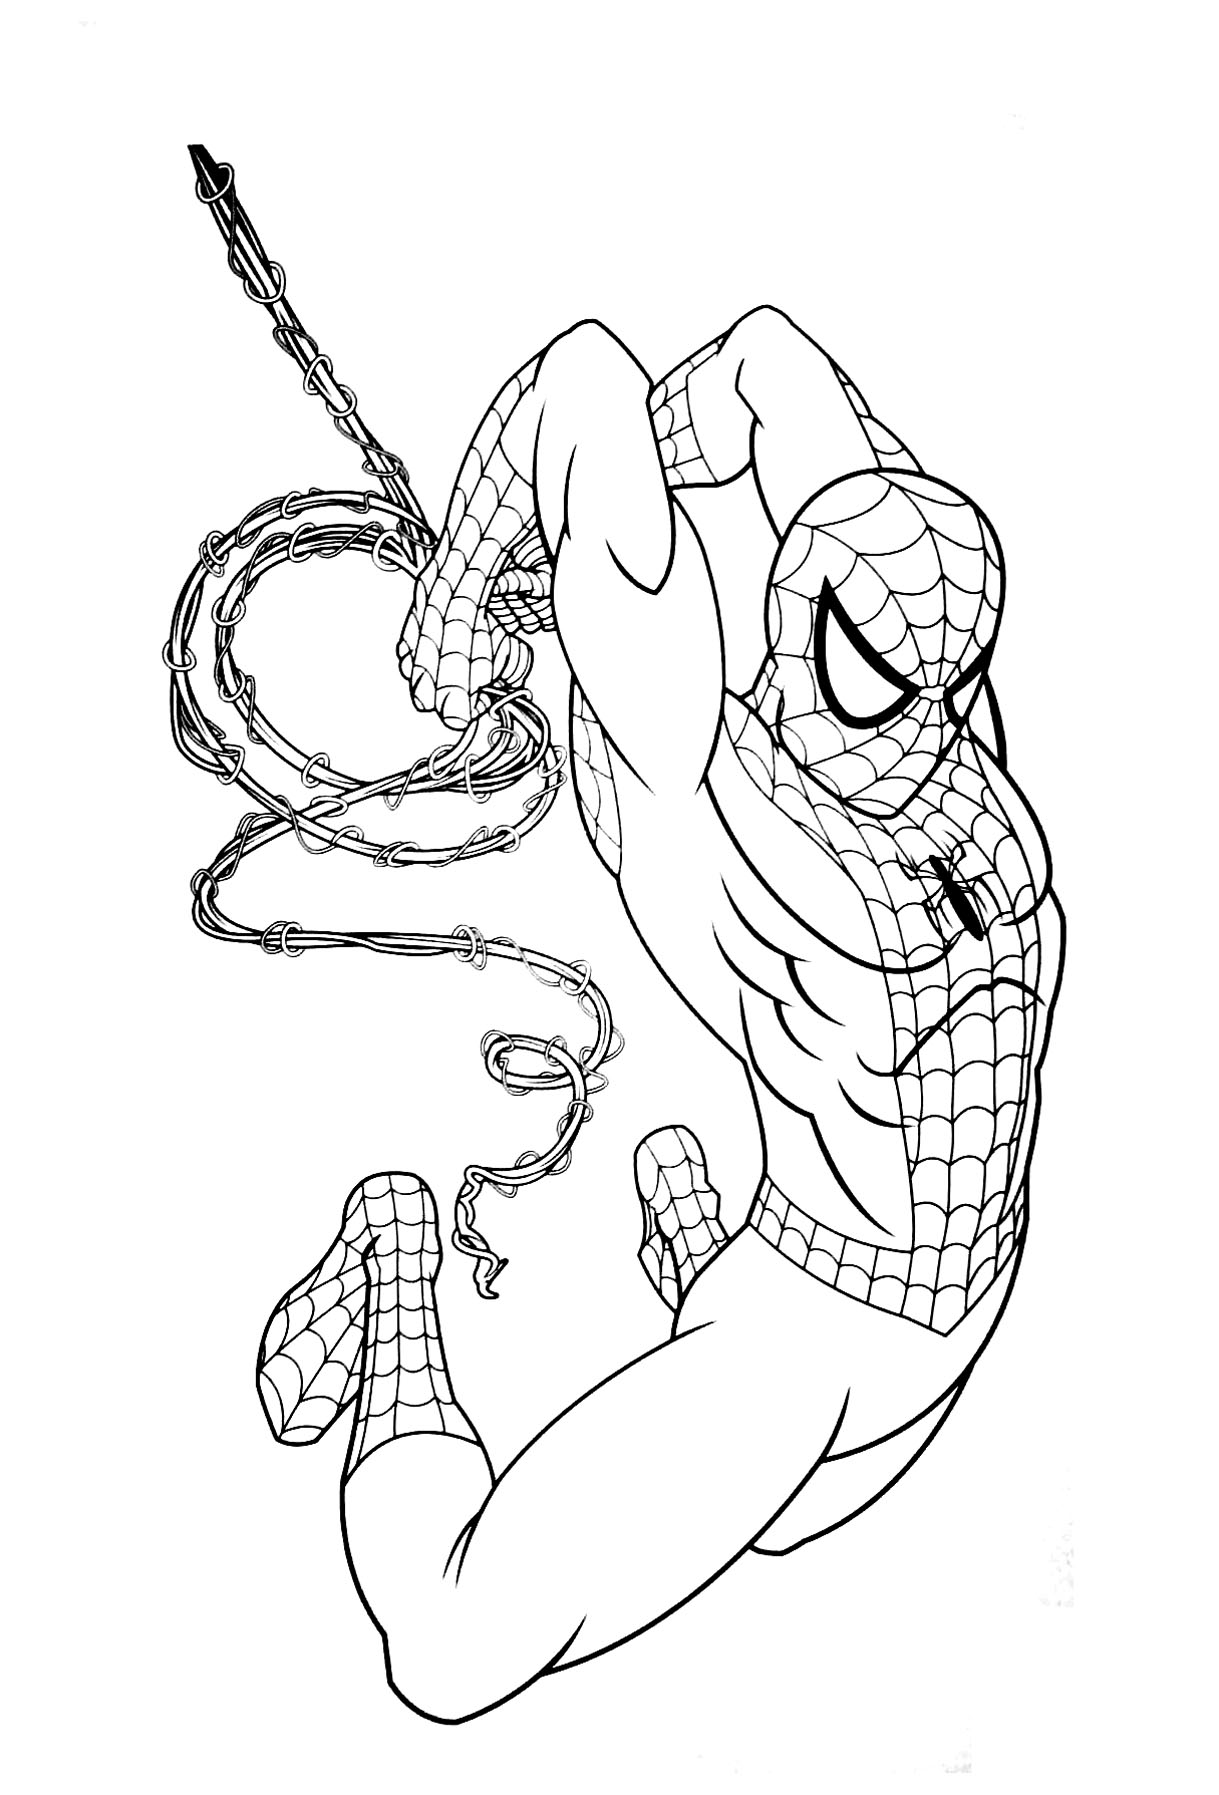 Spiderman Coloring Pages | Spiderman coloring, Superhero coloring ... | 1795x1219